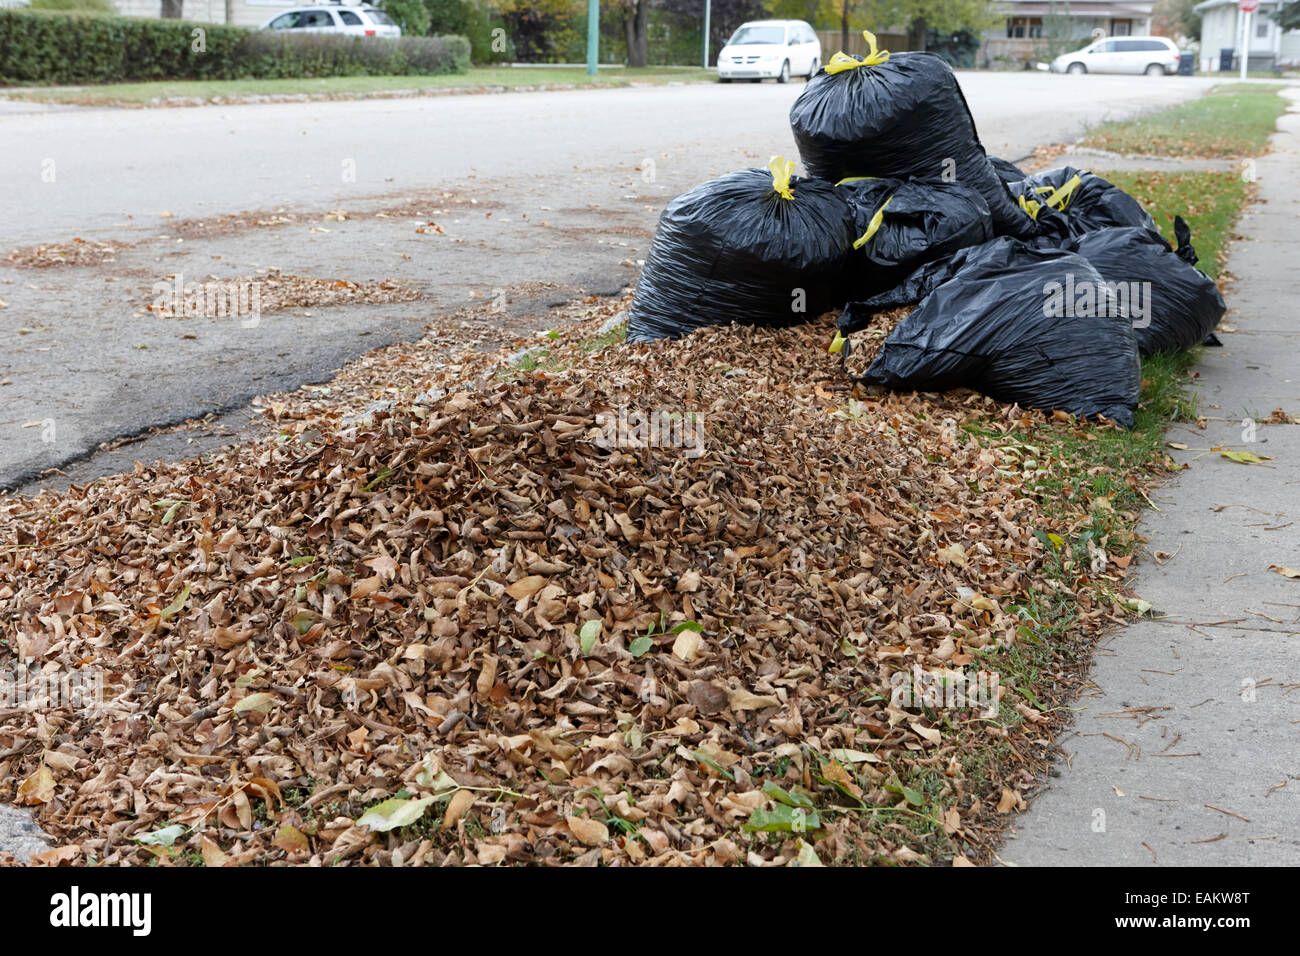 pile of dead collected leaves and bagged leaves ready for collection Saskatchewan Canada - Stock Image